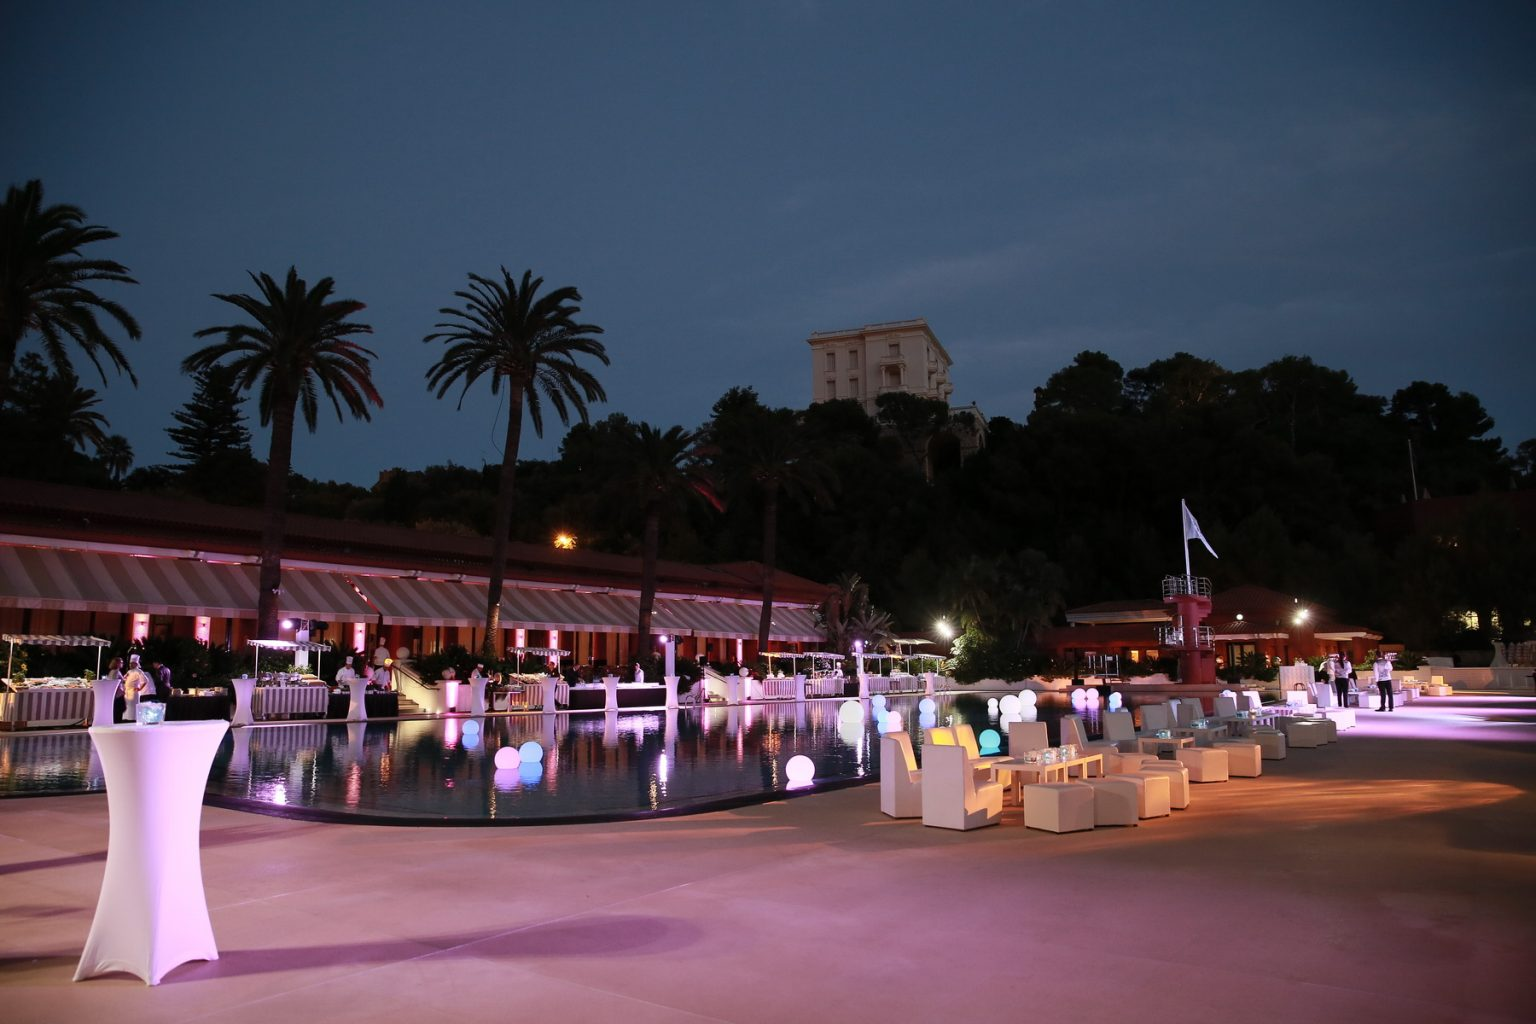 Le Deck Monte Carlo Pool Evening 18 - Le Deck Monte Carlo Pool Evening